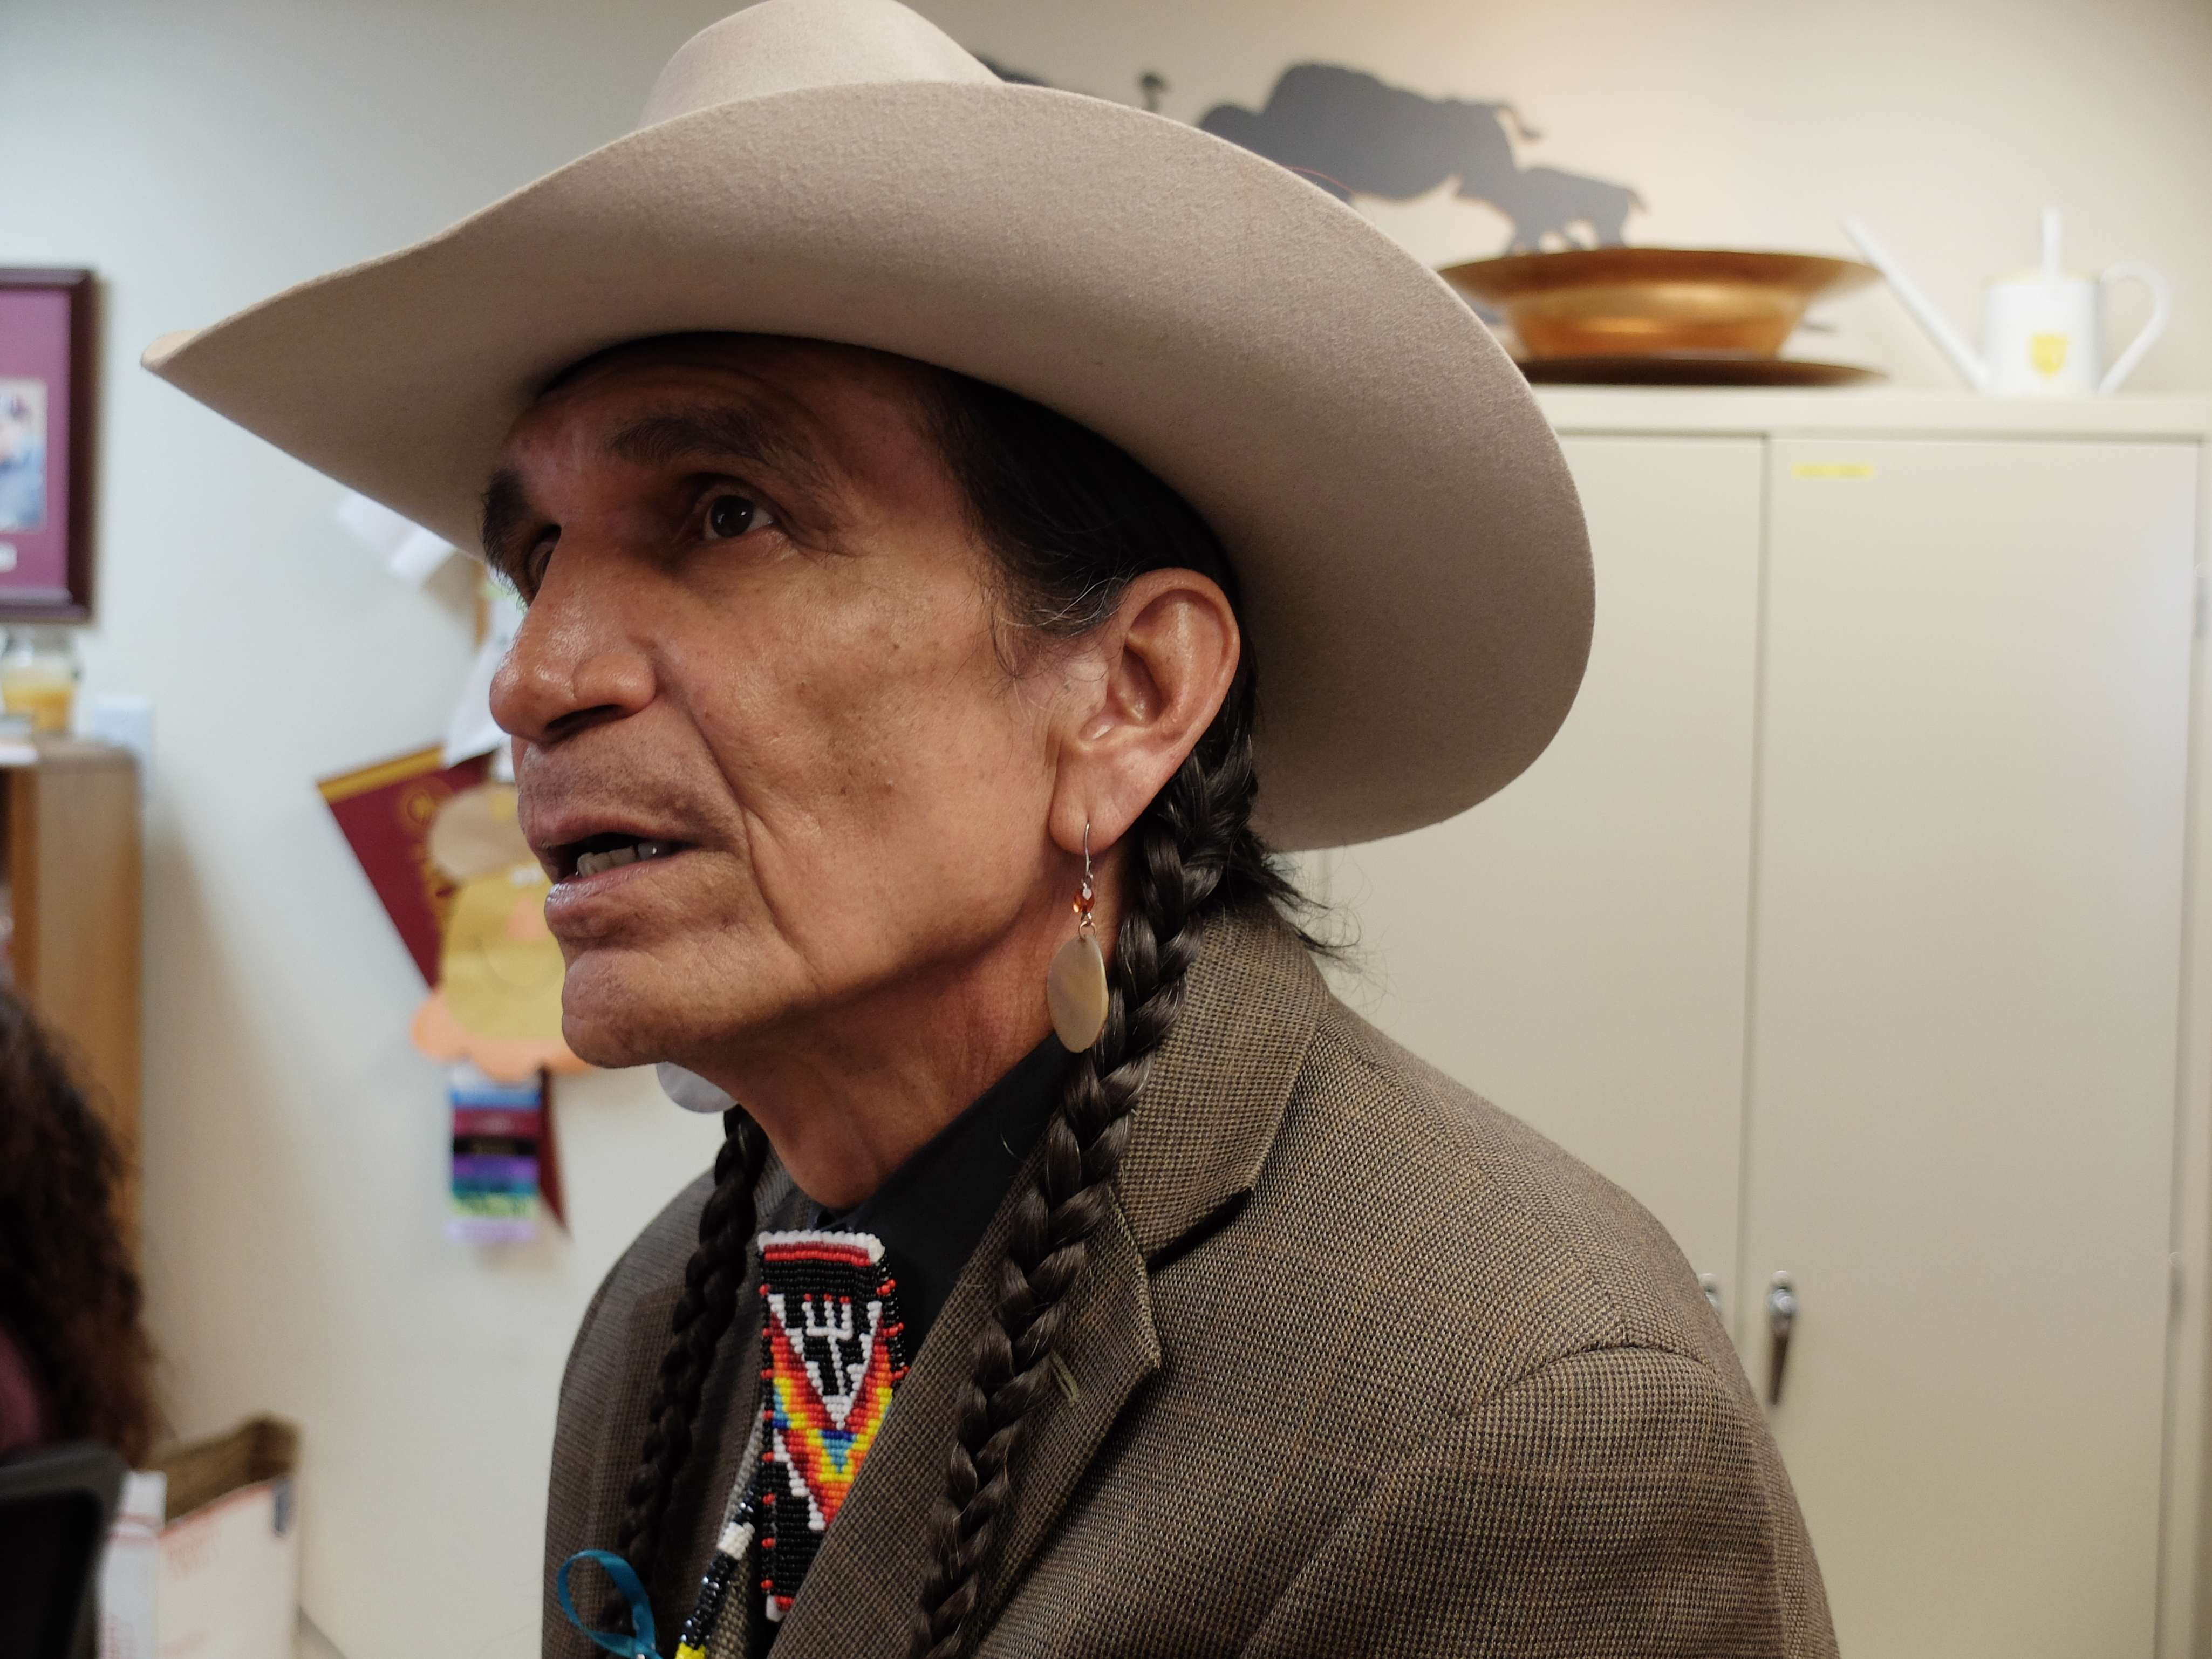 Tribal elder Tommy Christian, who lives on Montana's Fort Peck Indian Reservation, speaks at an anti-trafficking conference at the Fort Peck Community College in Montana, April 28, 2016.